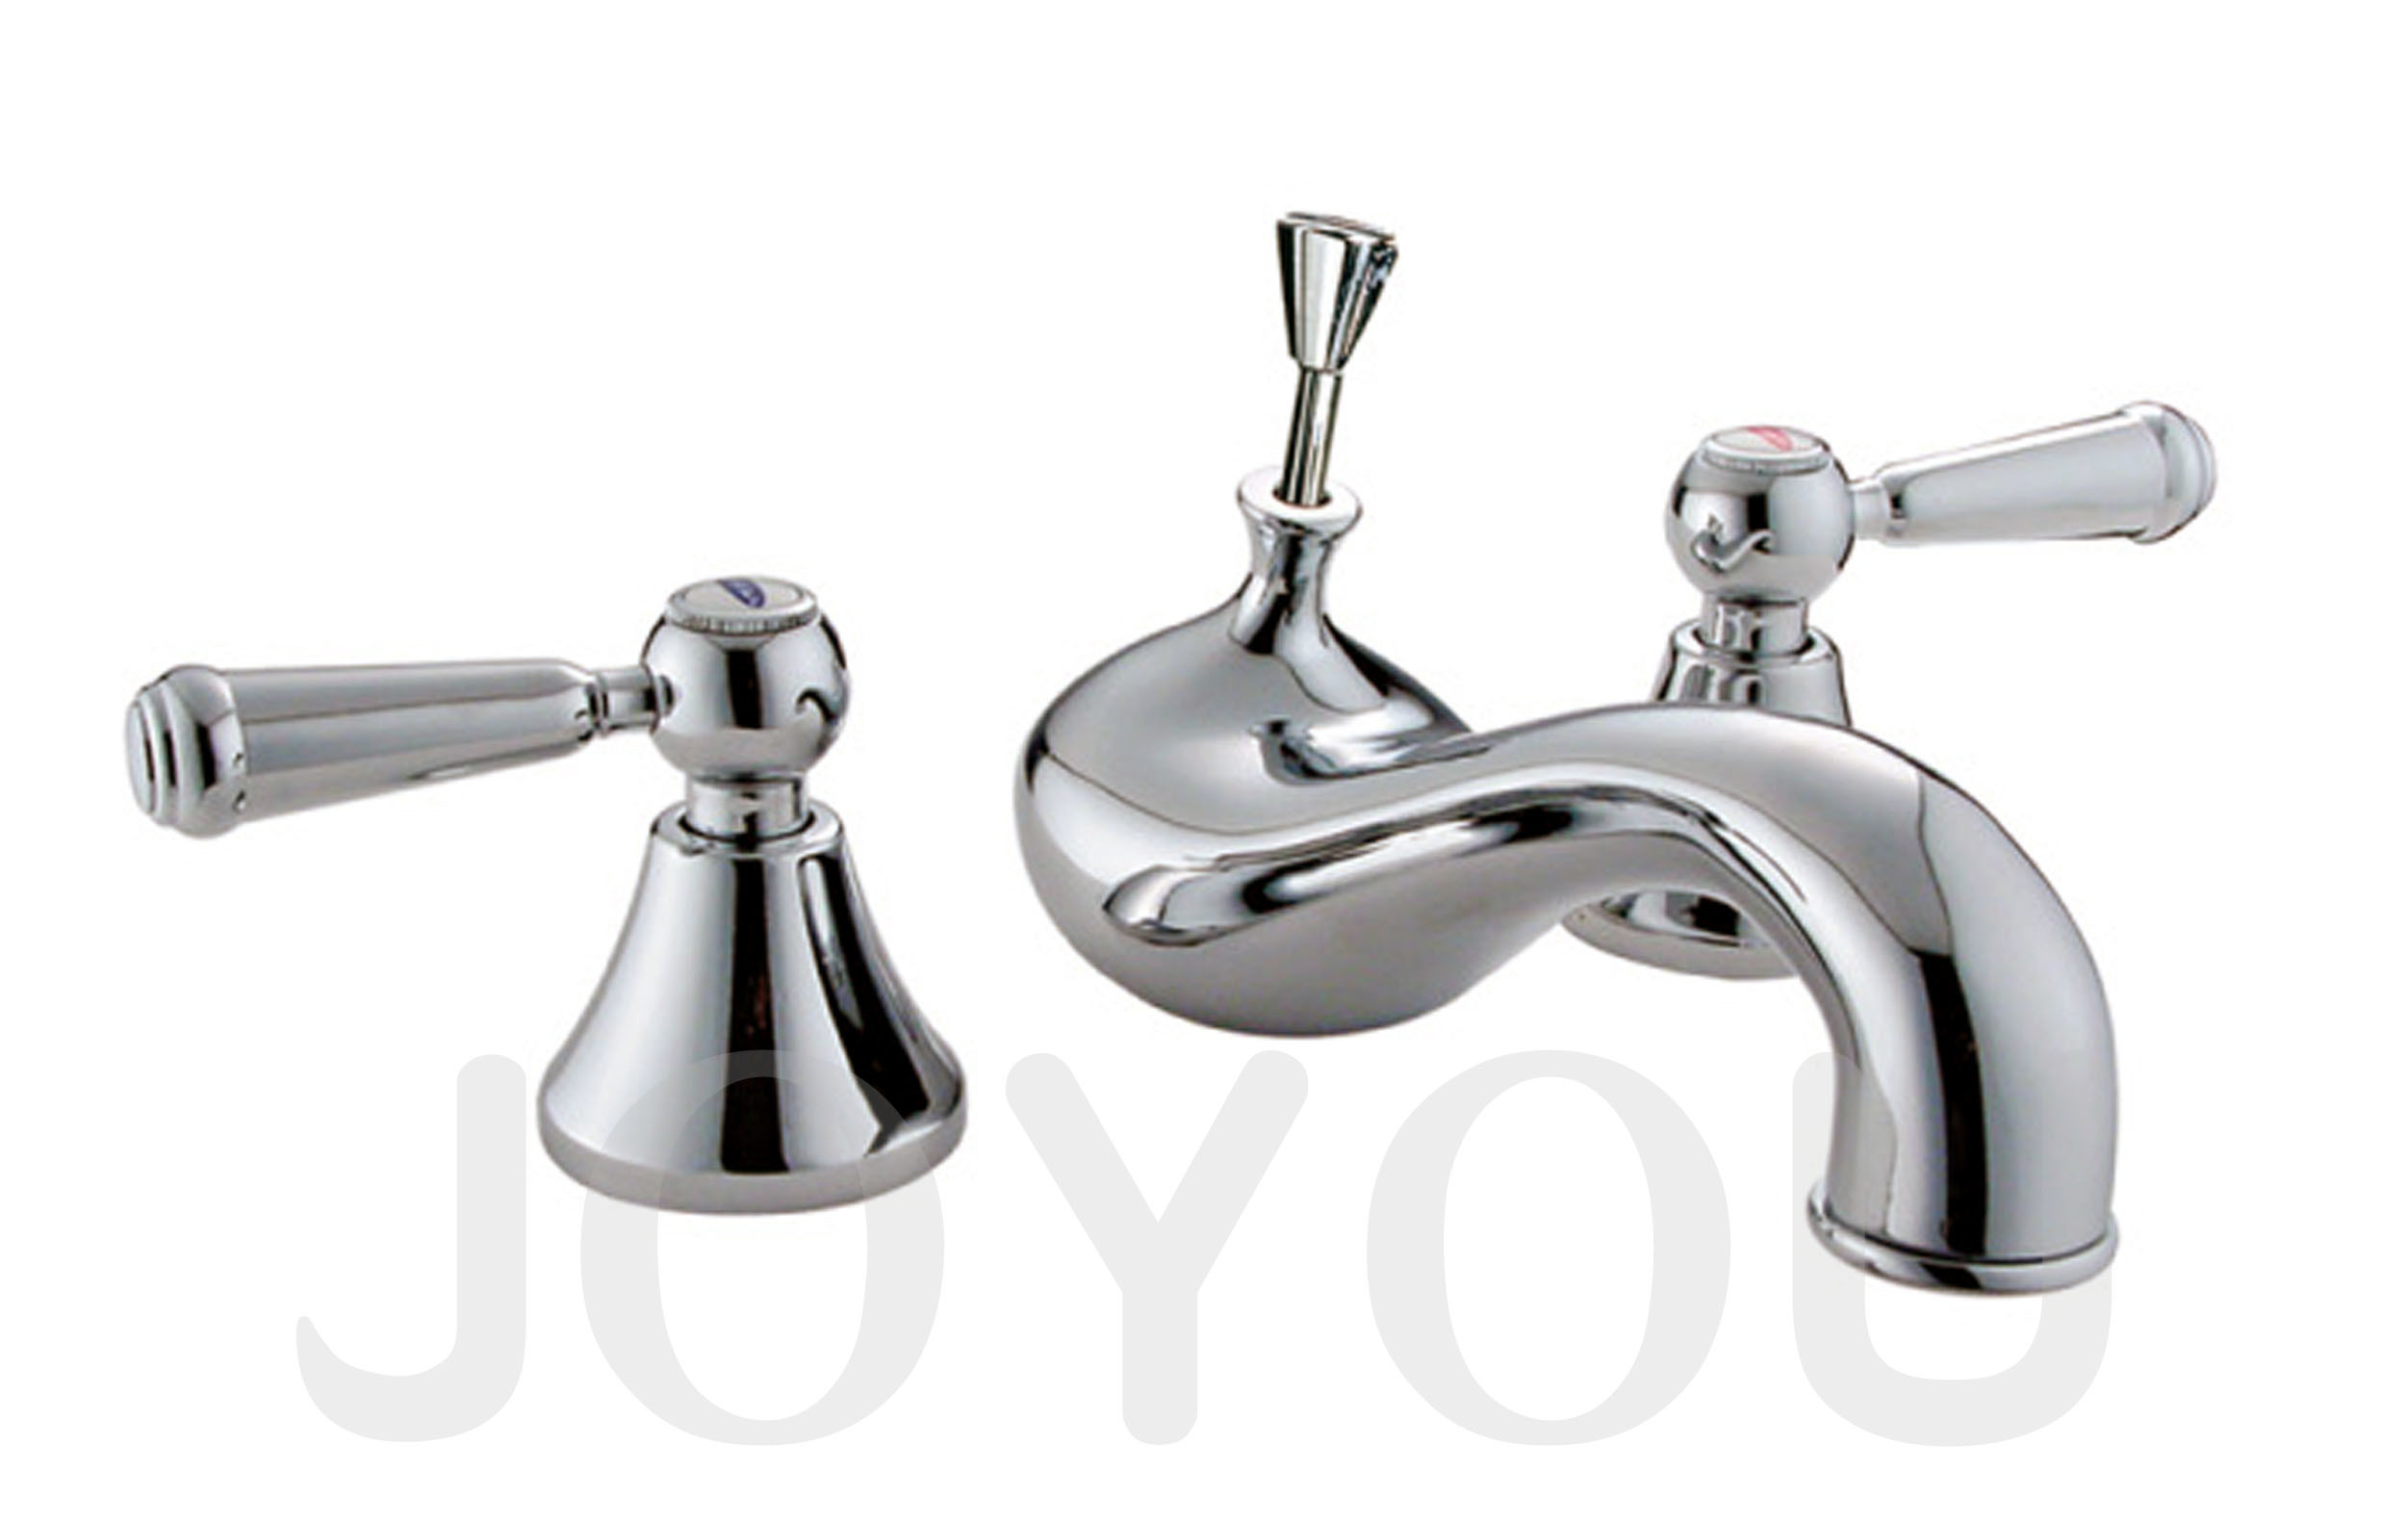 American Style Faucet Jy03732 China American Style Faucet Faucet